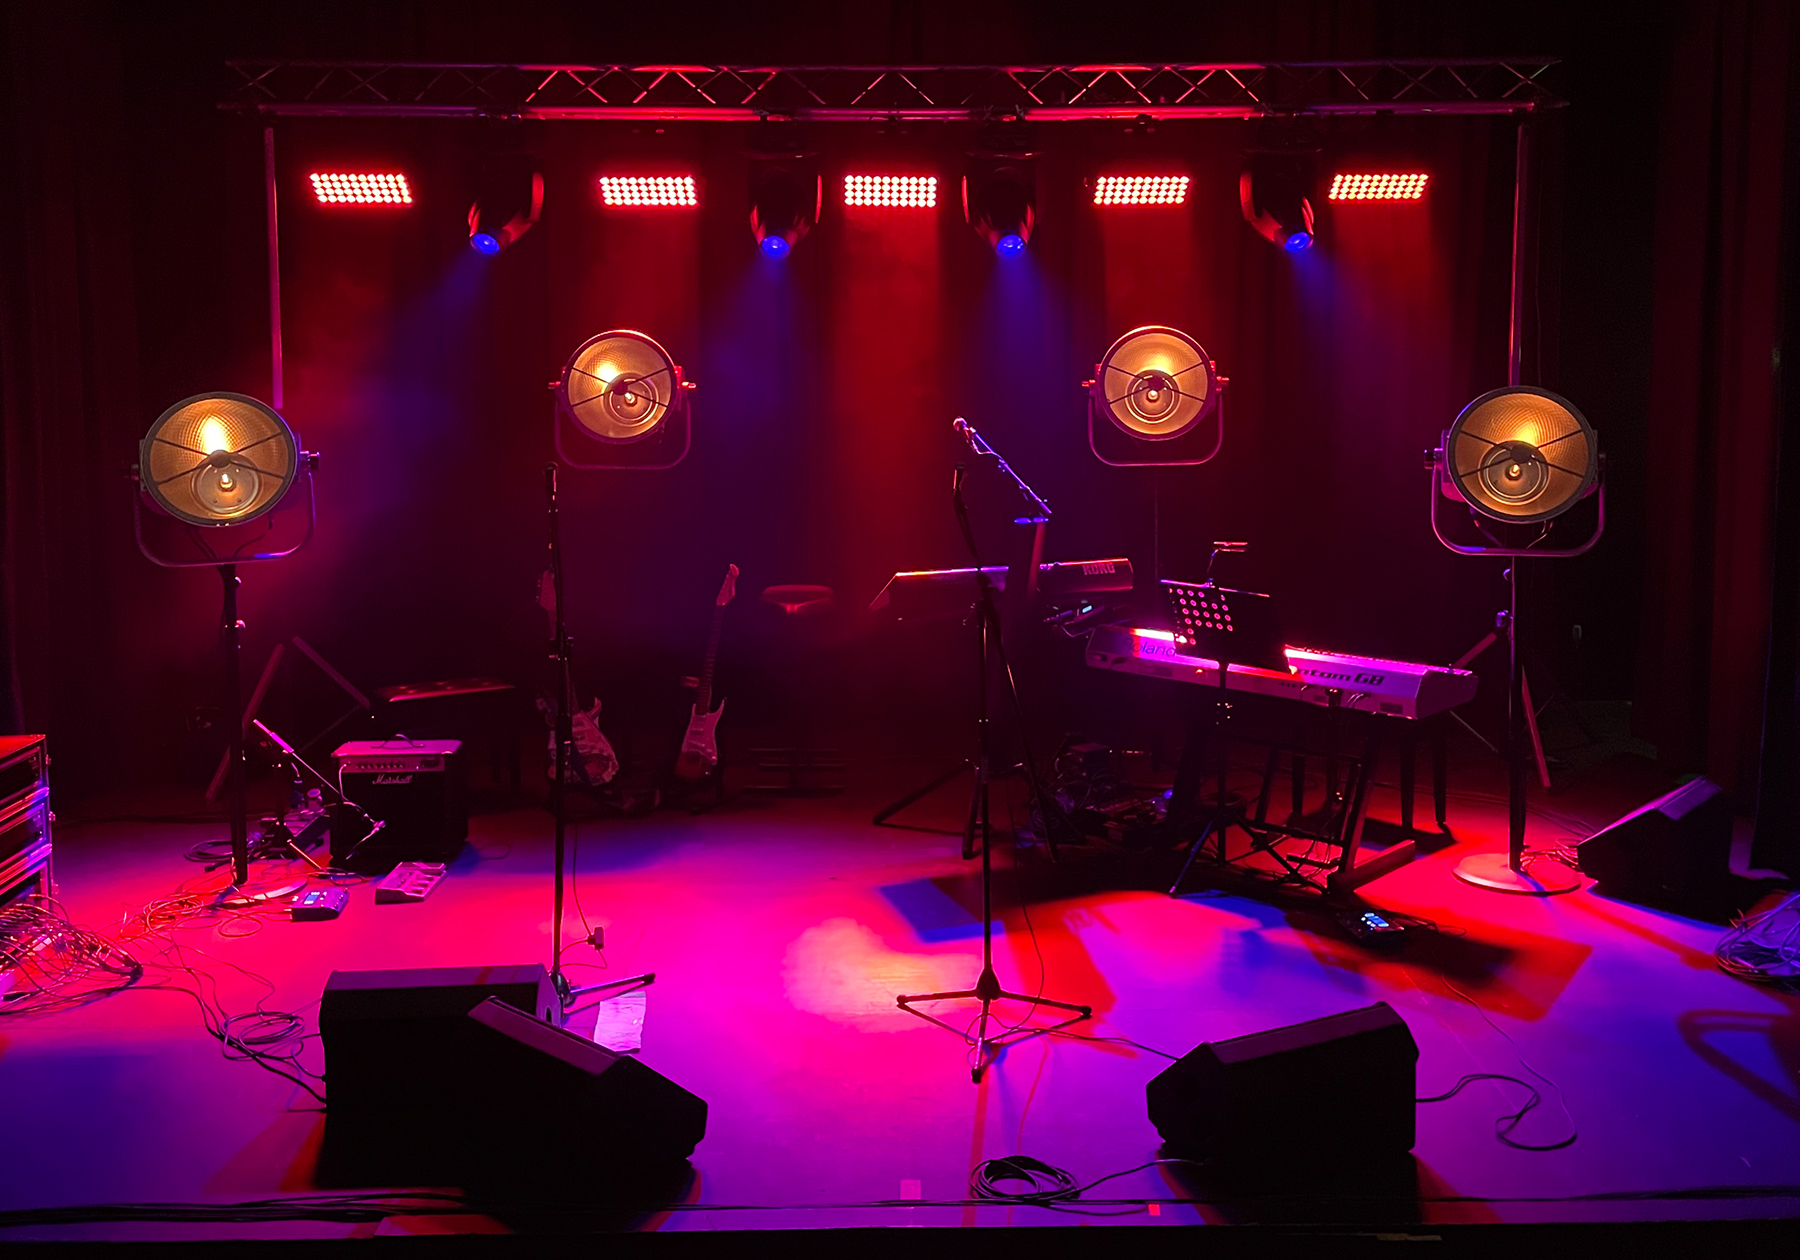 Hire live event production, sound, lighting, AV equipment, PA systems in South West Wales, Cardiff, Swansea, Newport, Carmarthenshire & Pembrokeshire